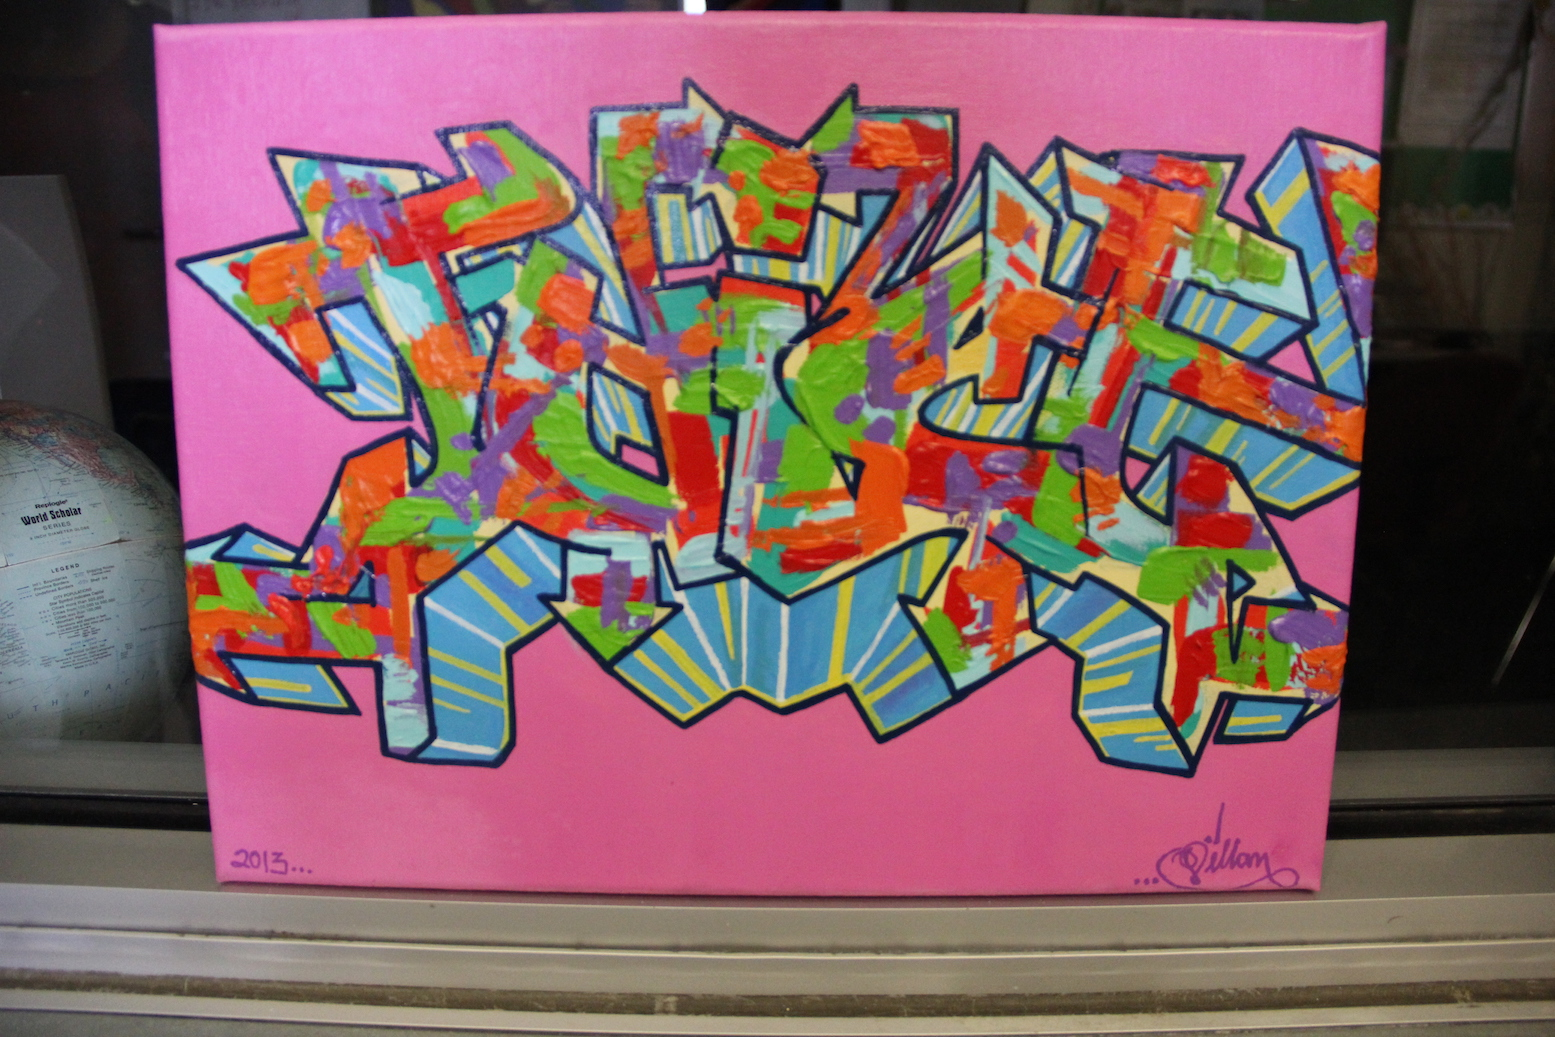 JUiCE Los Angeles Hip Hop Nonprofit Breakdance Music Art Community Youth Breakdance Los Angeles Street Graff.JPG